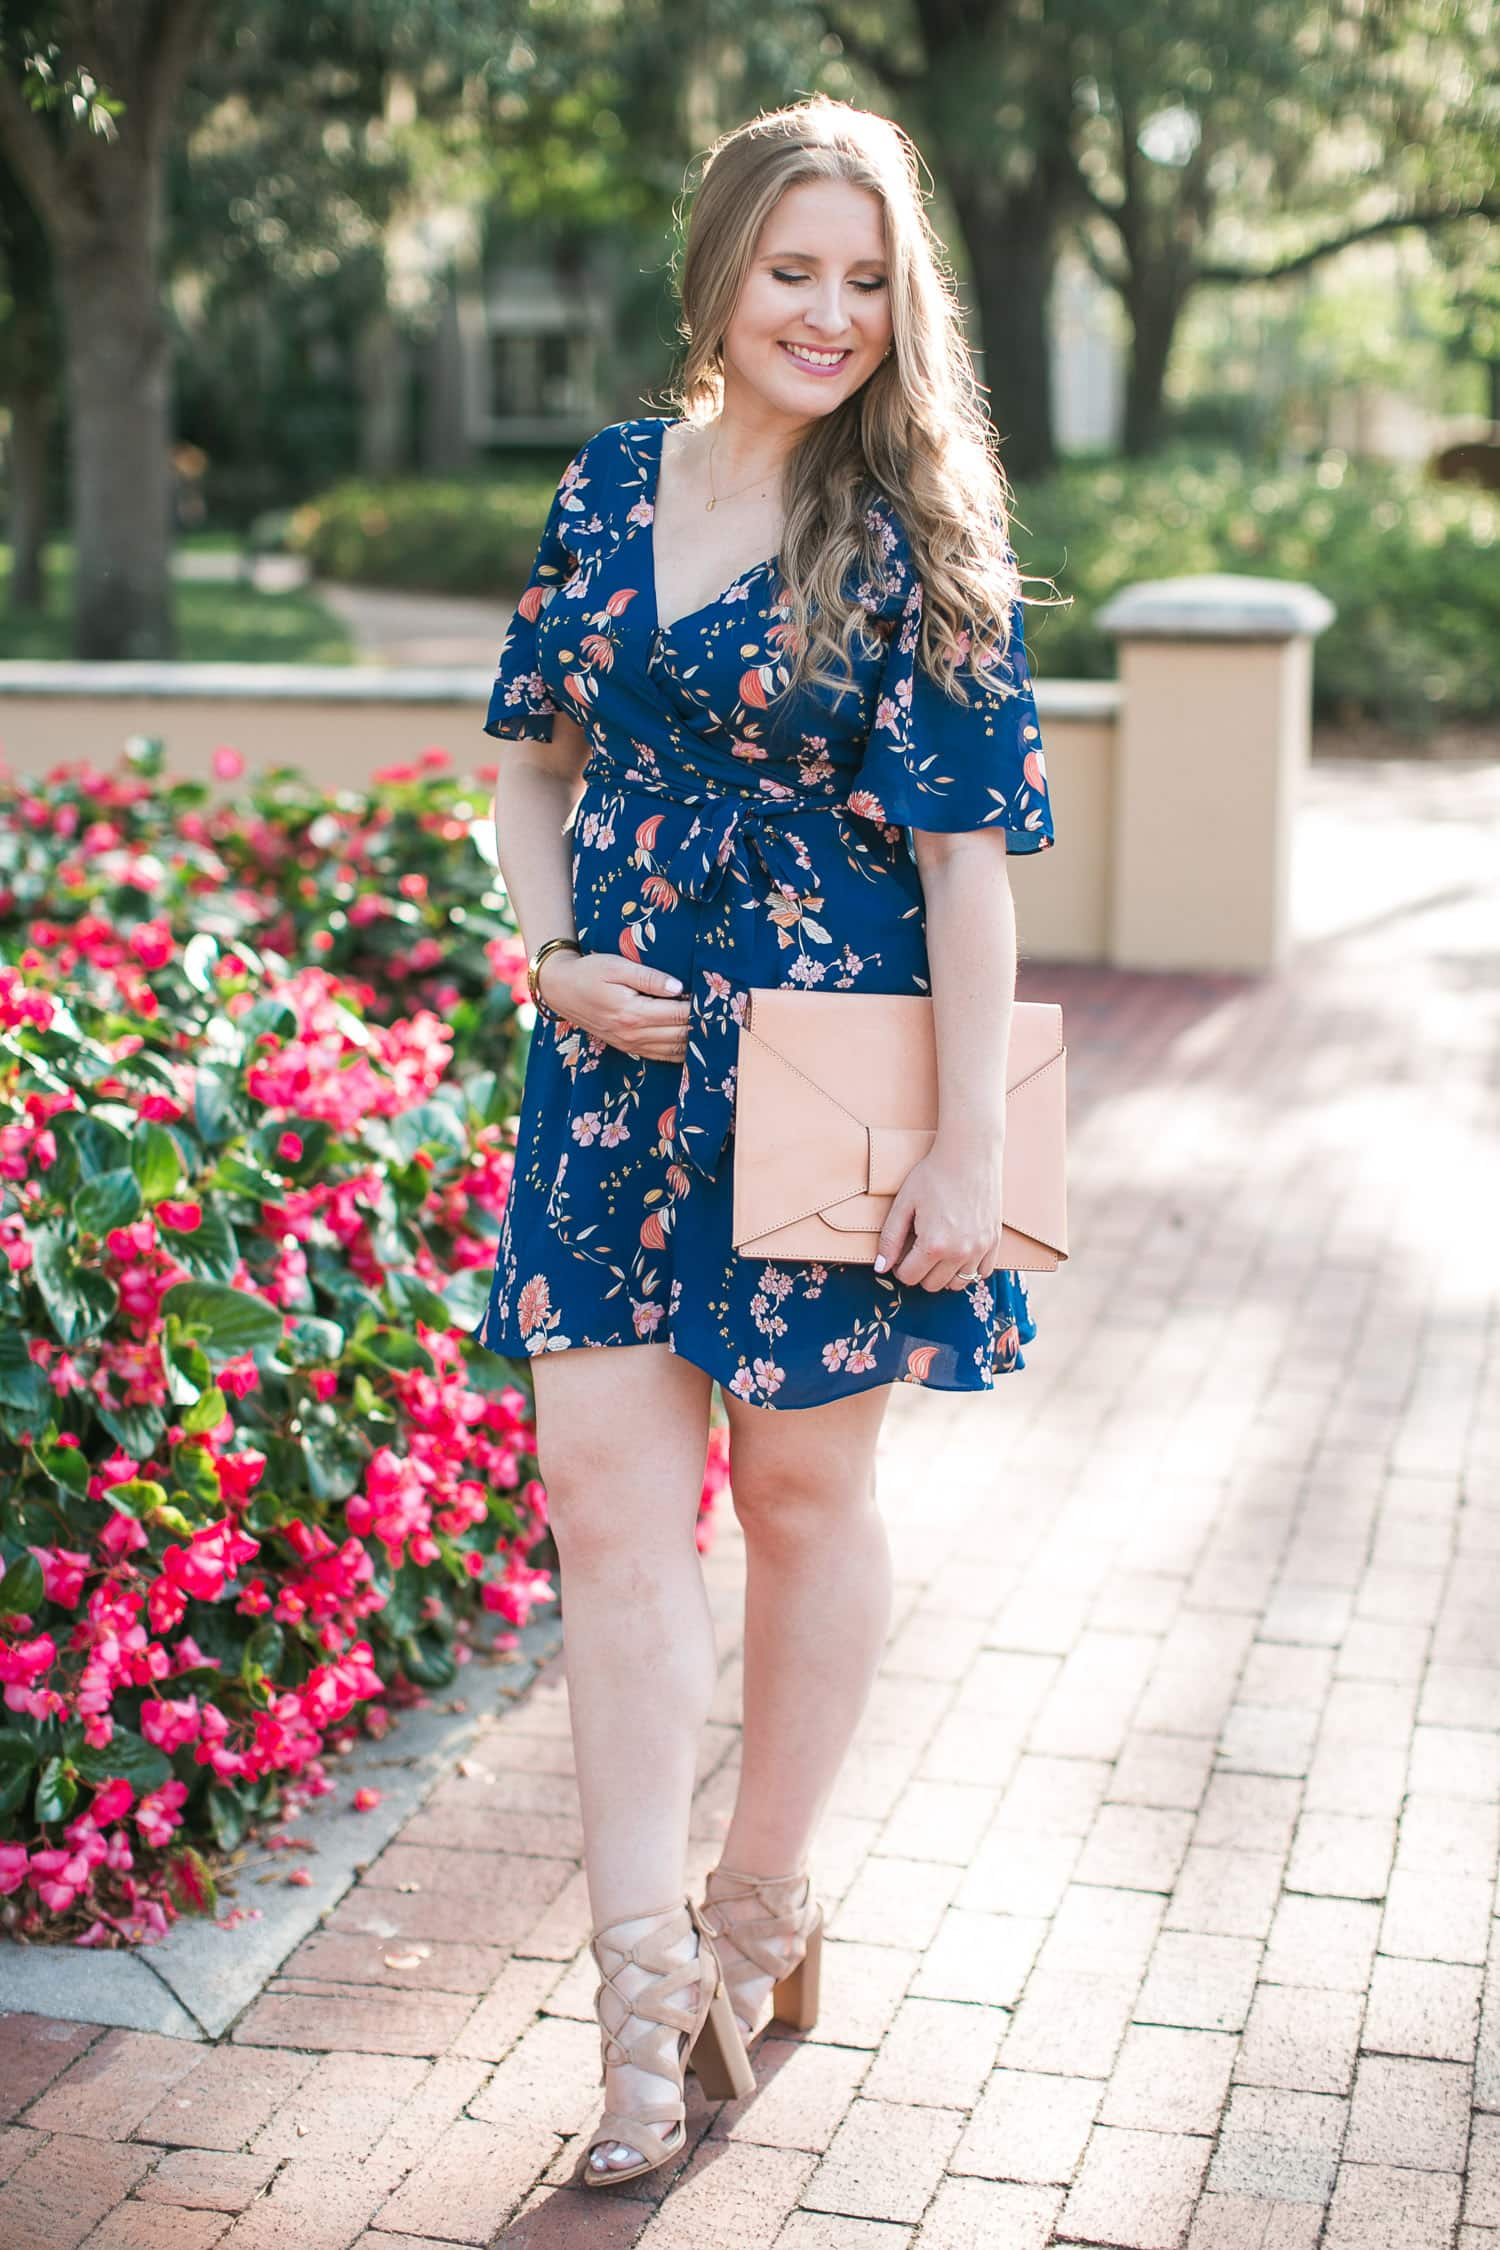 Affordable and maternity-friendly floral wrap dress under $100 styled by Florida fashion and personal style blogger Ashley Brooke Nicholas | BB Dakota Laselle Cherry Blossom Printed Wrap Dress | Maternity Style, maternity fashion, mommy to be, bump style, bump friendly outfits, maternity outfit idea, Sam Edelman Yardley Heeled Sandals, Banana Republic Bow Clutch, nude lace-up sandals, affordable outfit ideas, preppy fashion, preppy style